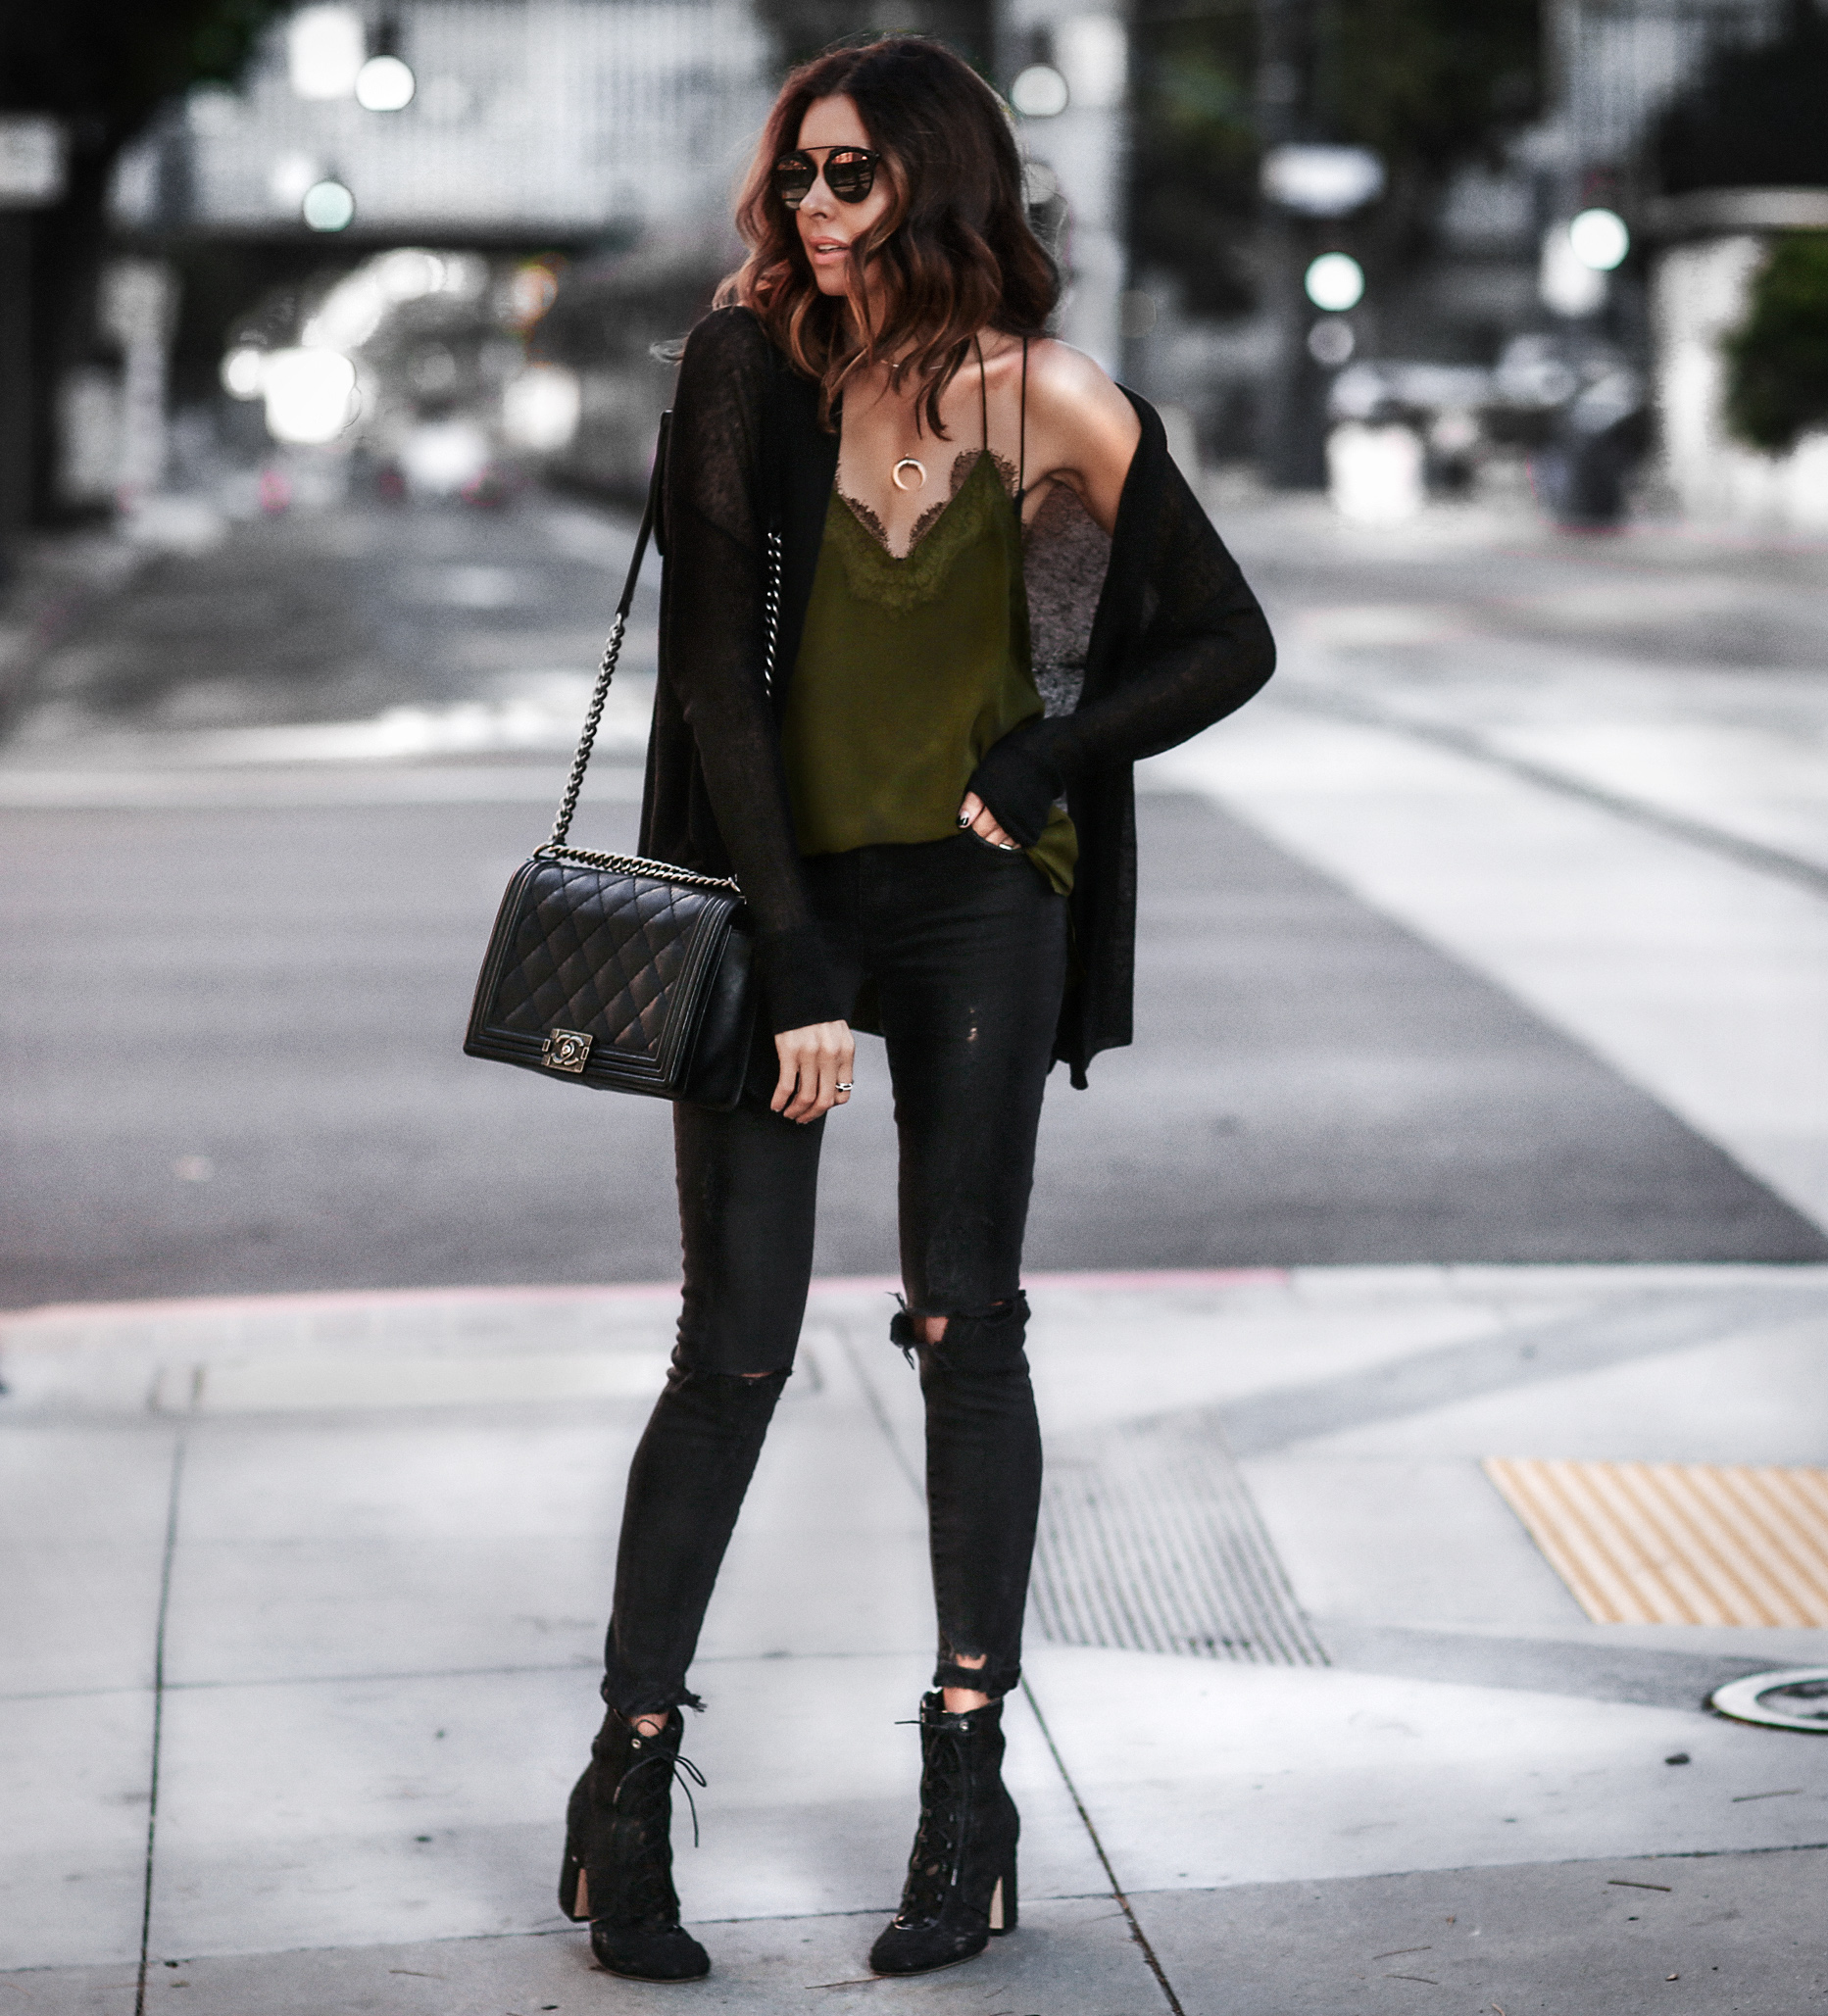 black cardigan, green lace cami, black ripped skinny jeans, lace up booties, chanel bag